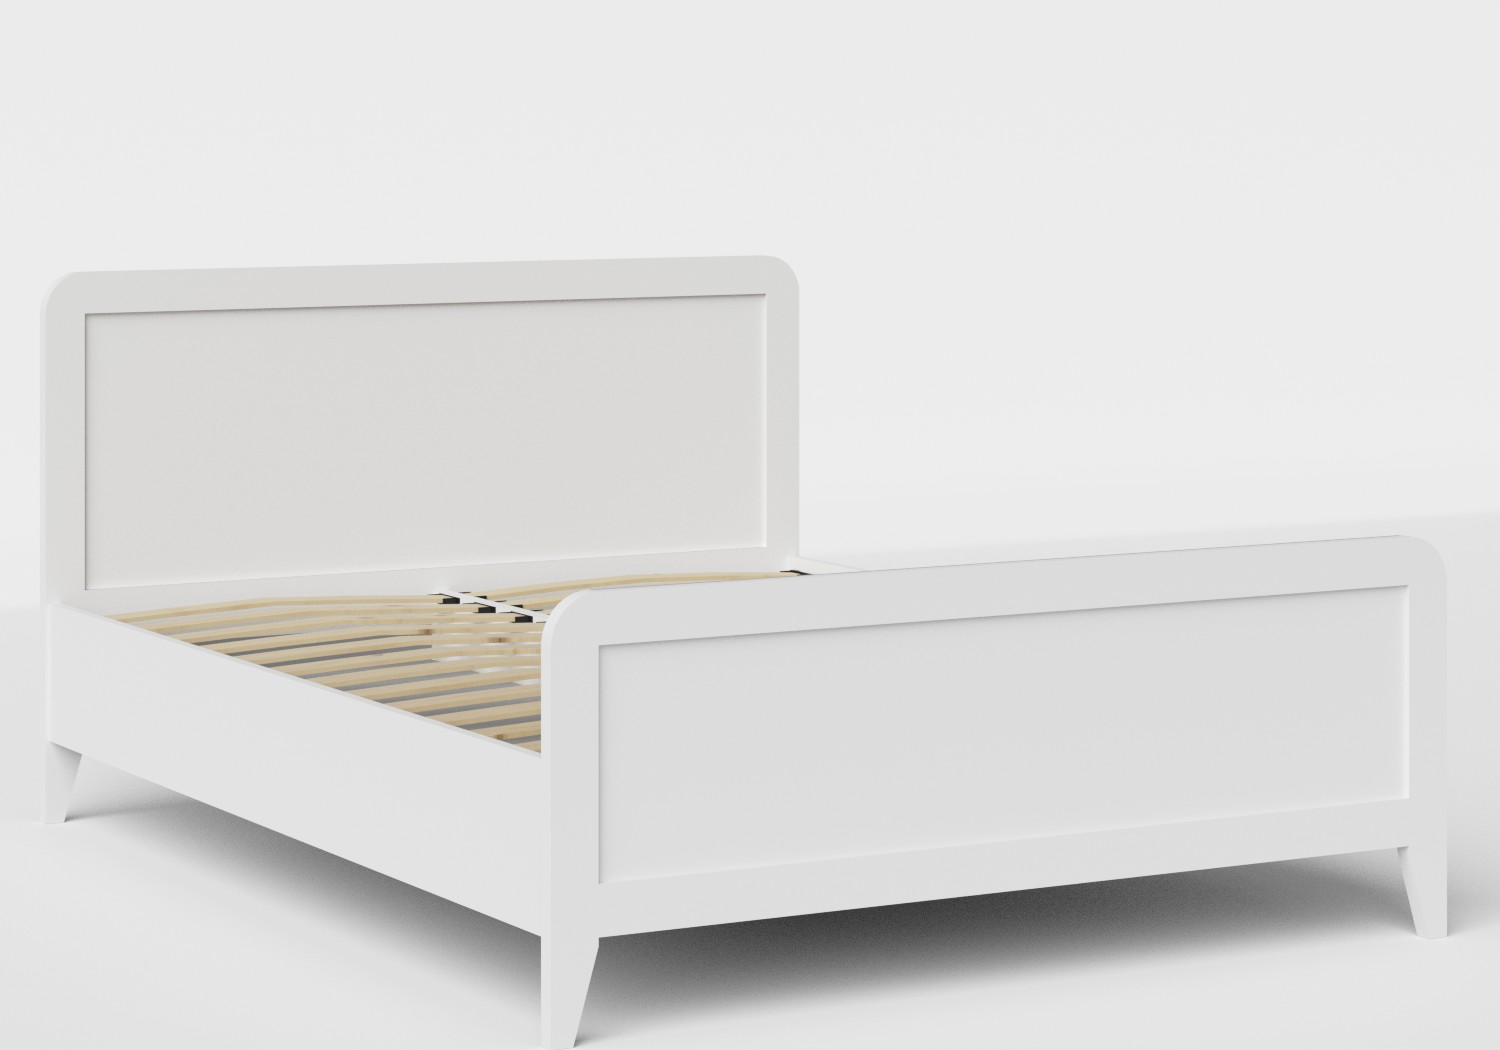 Keats Wood Bed in White shown with slatted frame